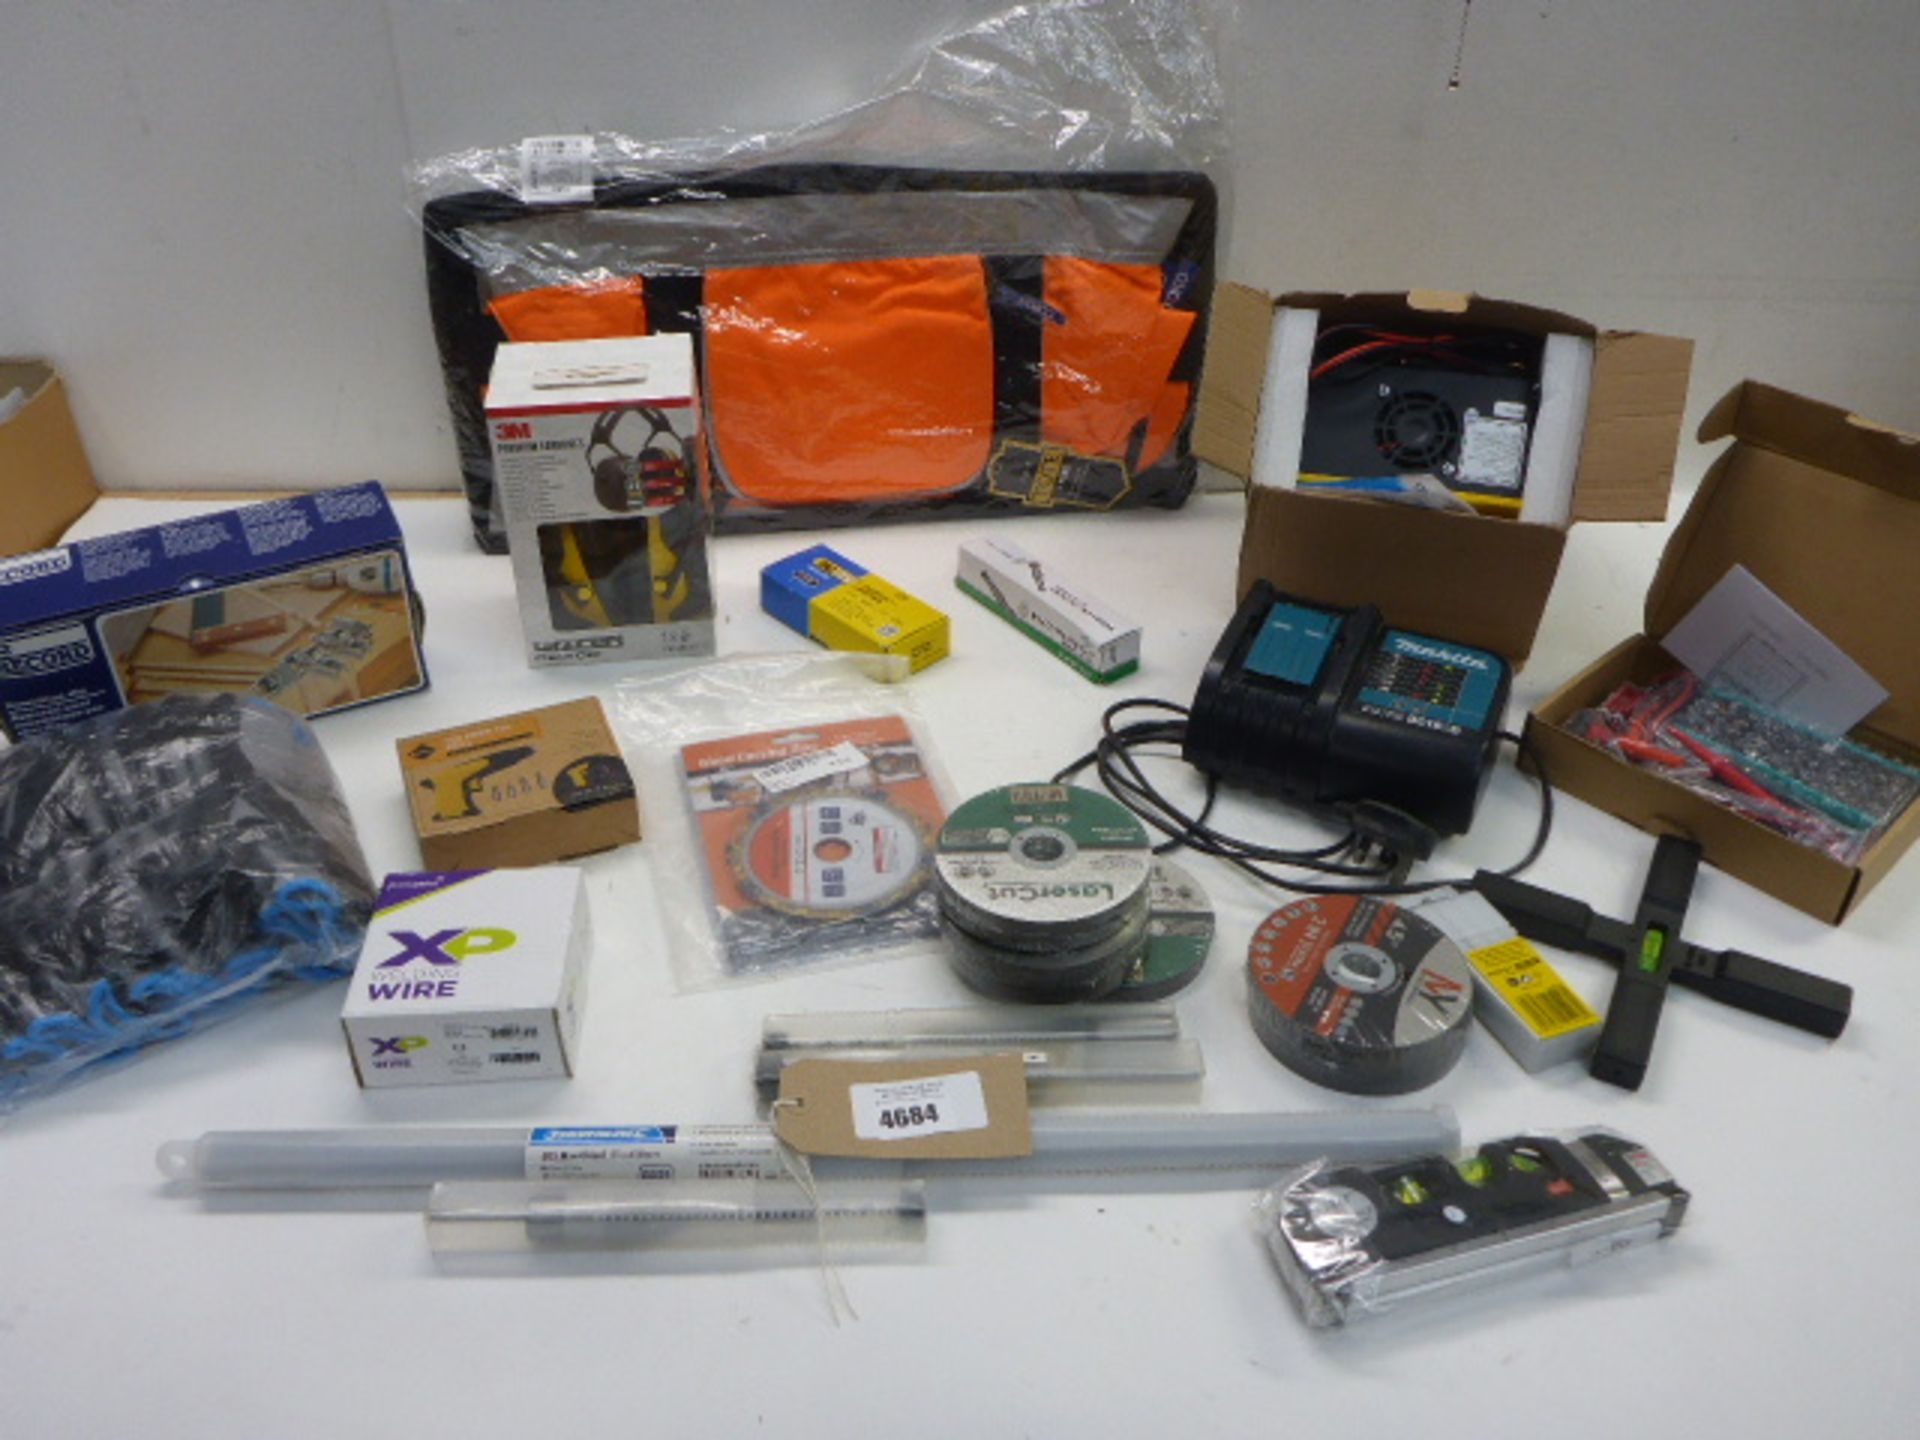 Makita battery charger, Smart pulse charger, multimeter, Dowelling jig, chisel, drill bits,